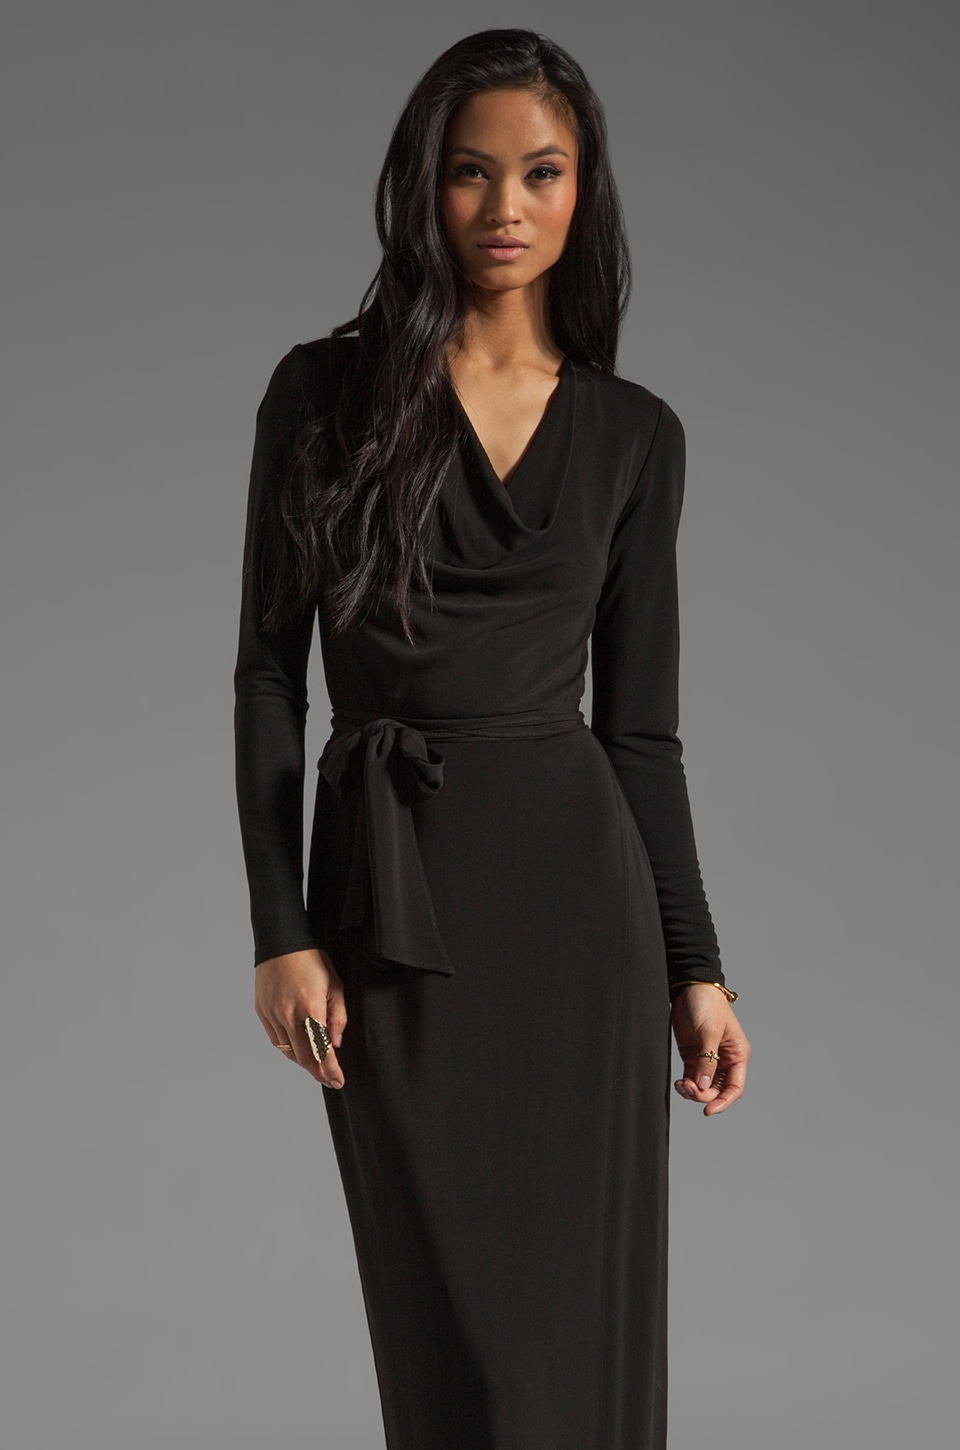 Haute Hippie Long Sleeve Cowl Gown with Self Belt in Black